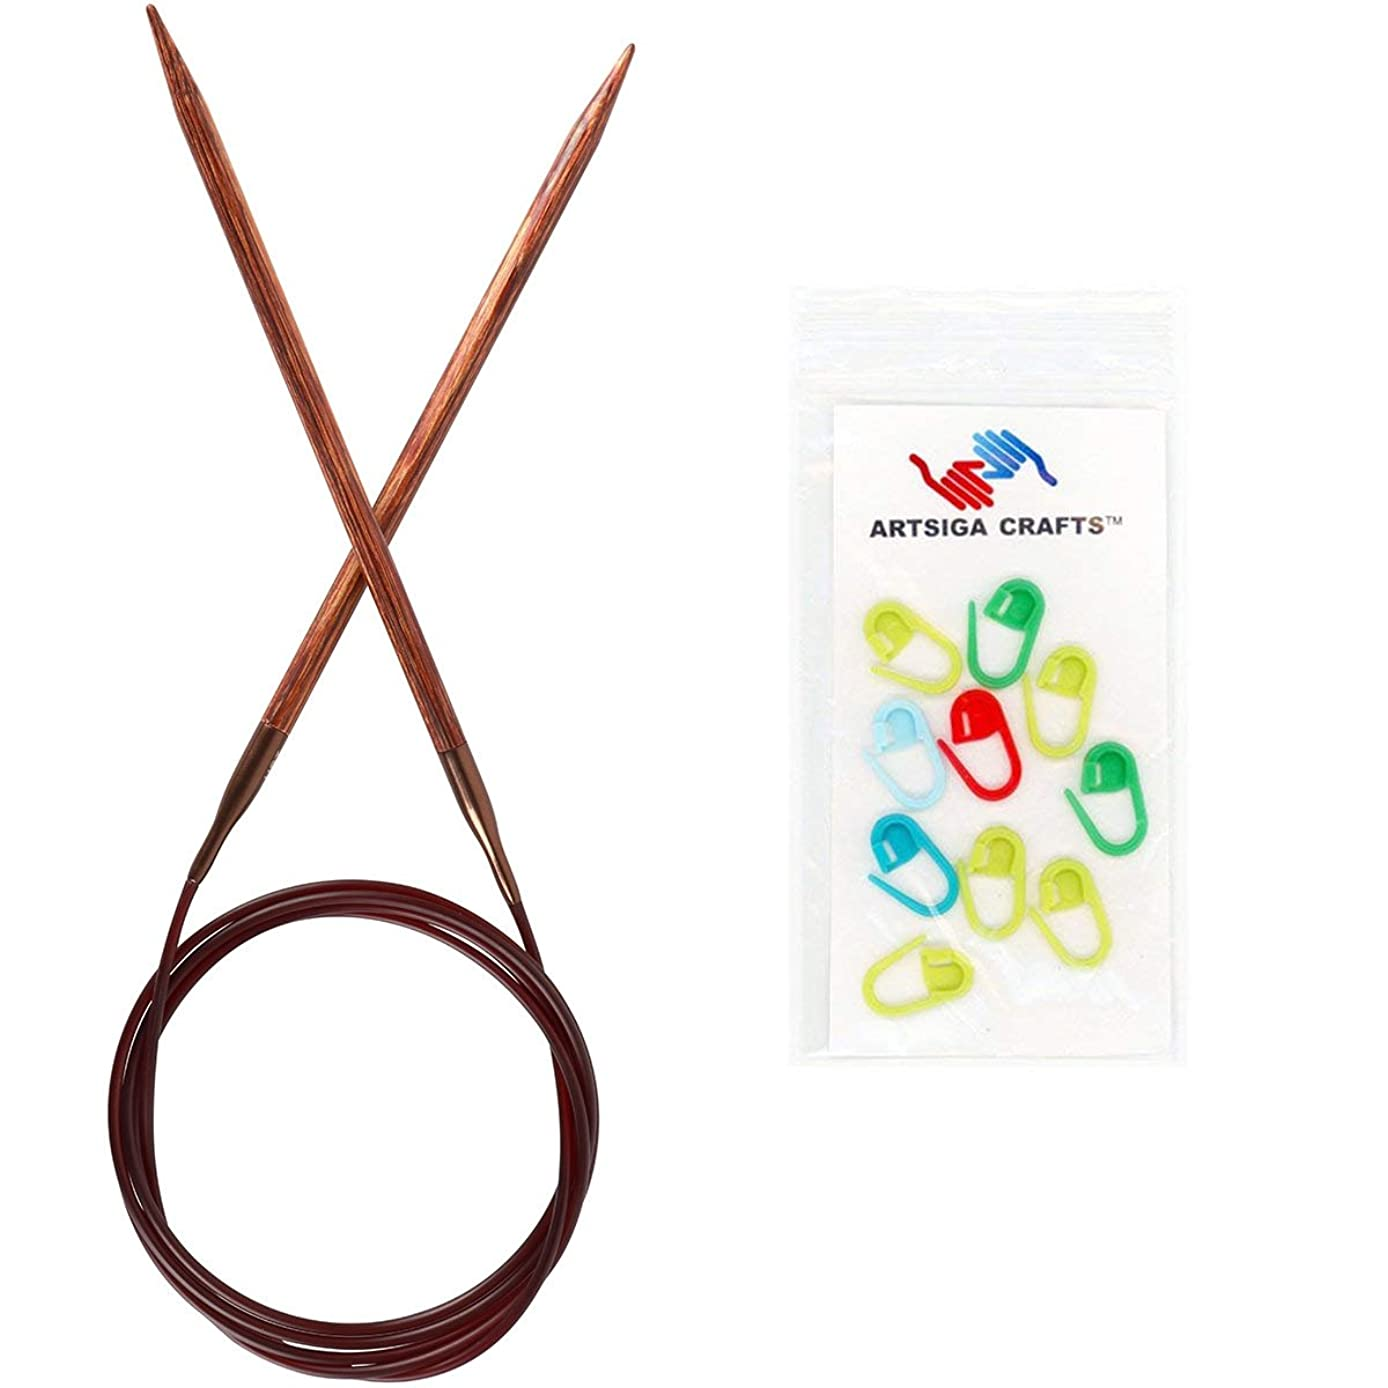 Knitter's Pride Knitting Needles Ginger Fixed Circular 24 inch Size US 6 (4mm) Bundle with 10 Artsiga Crafts Stitch Markers